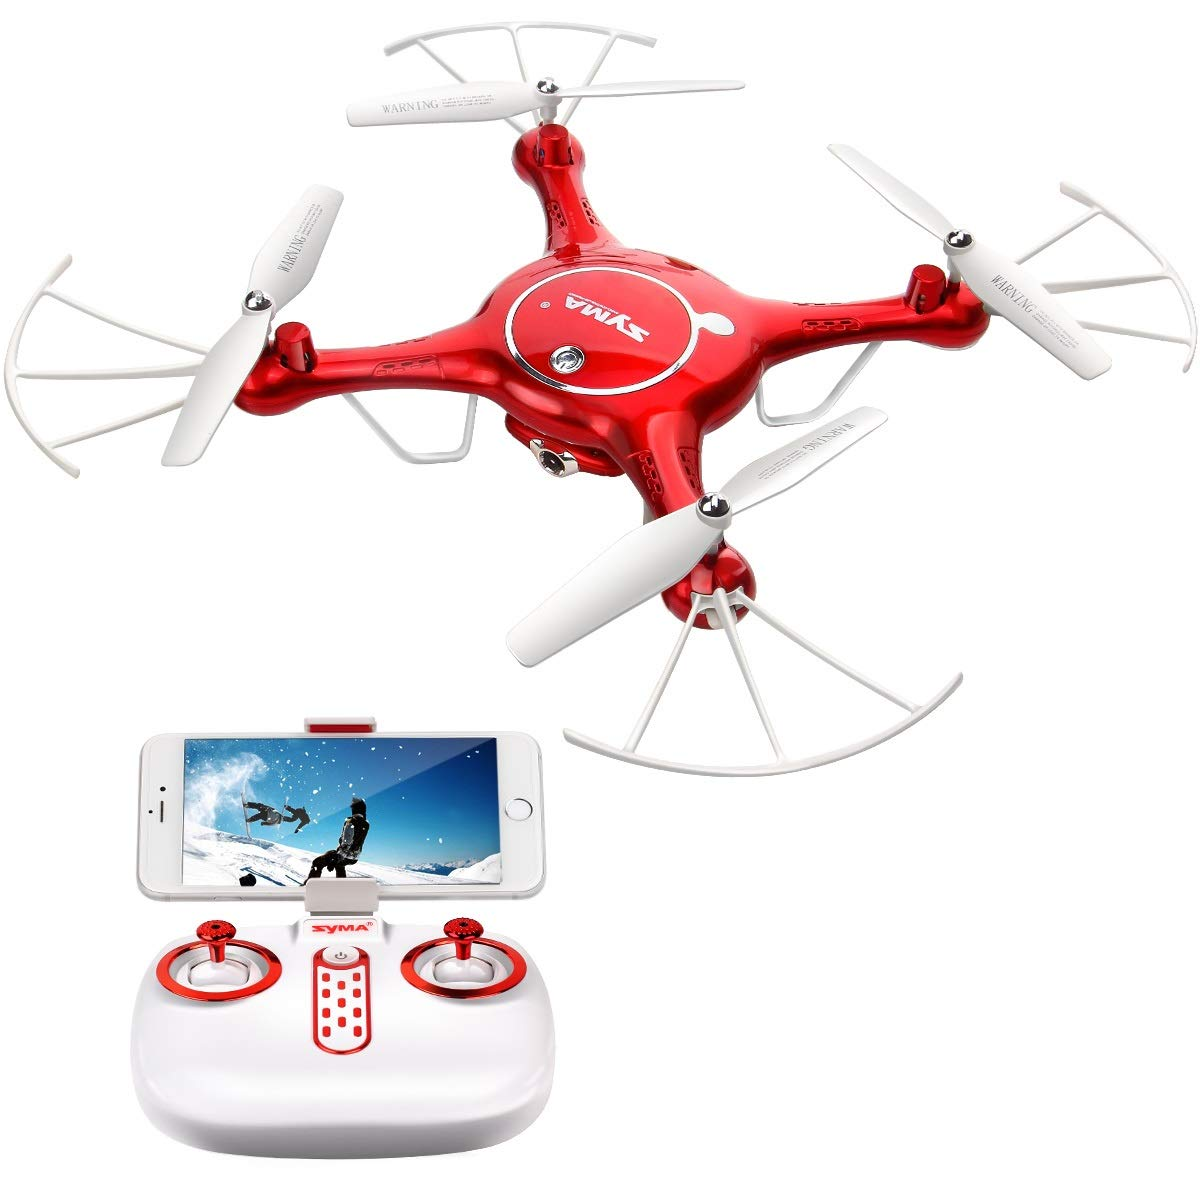 Syma X5UW Wifi FPV 720P HD Camera Quadcopter Drone with Flight Plan Route App Control & Altitude Hold Function With Extra Battery Red DoDoeleph B01M1LJNJK